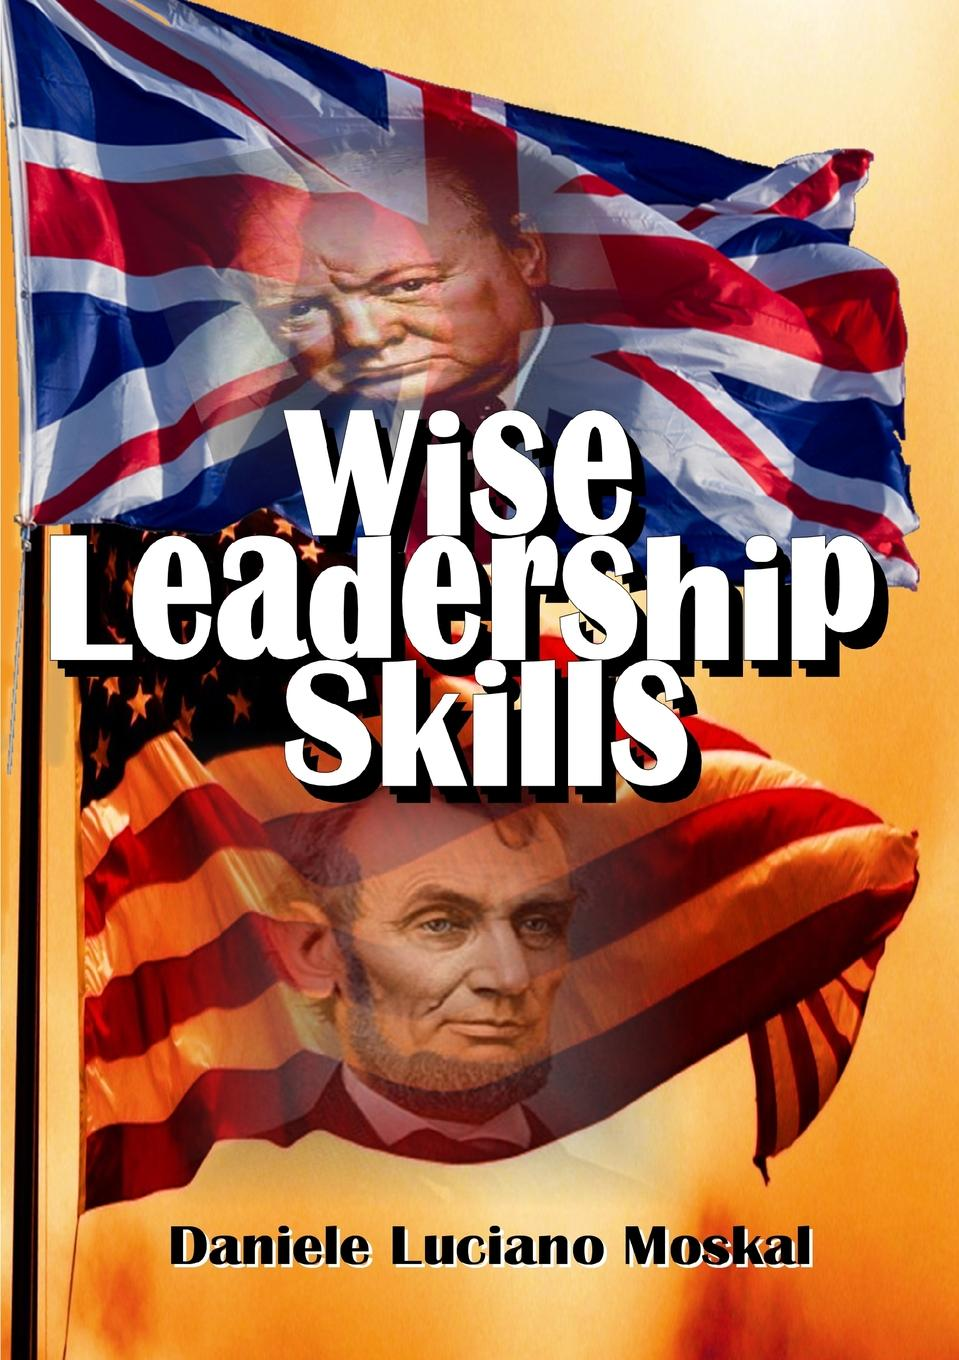 Daniele Luciano Moskal Wise Leadership Skills winston churchill s war leadership